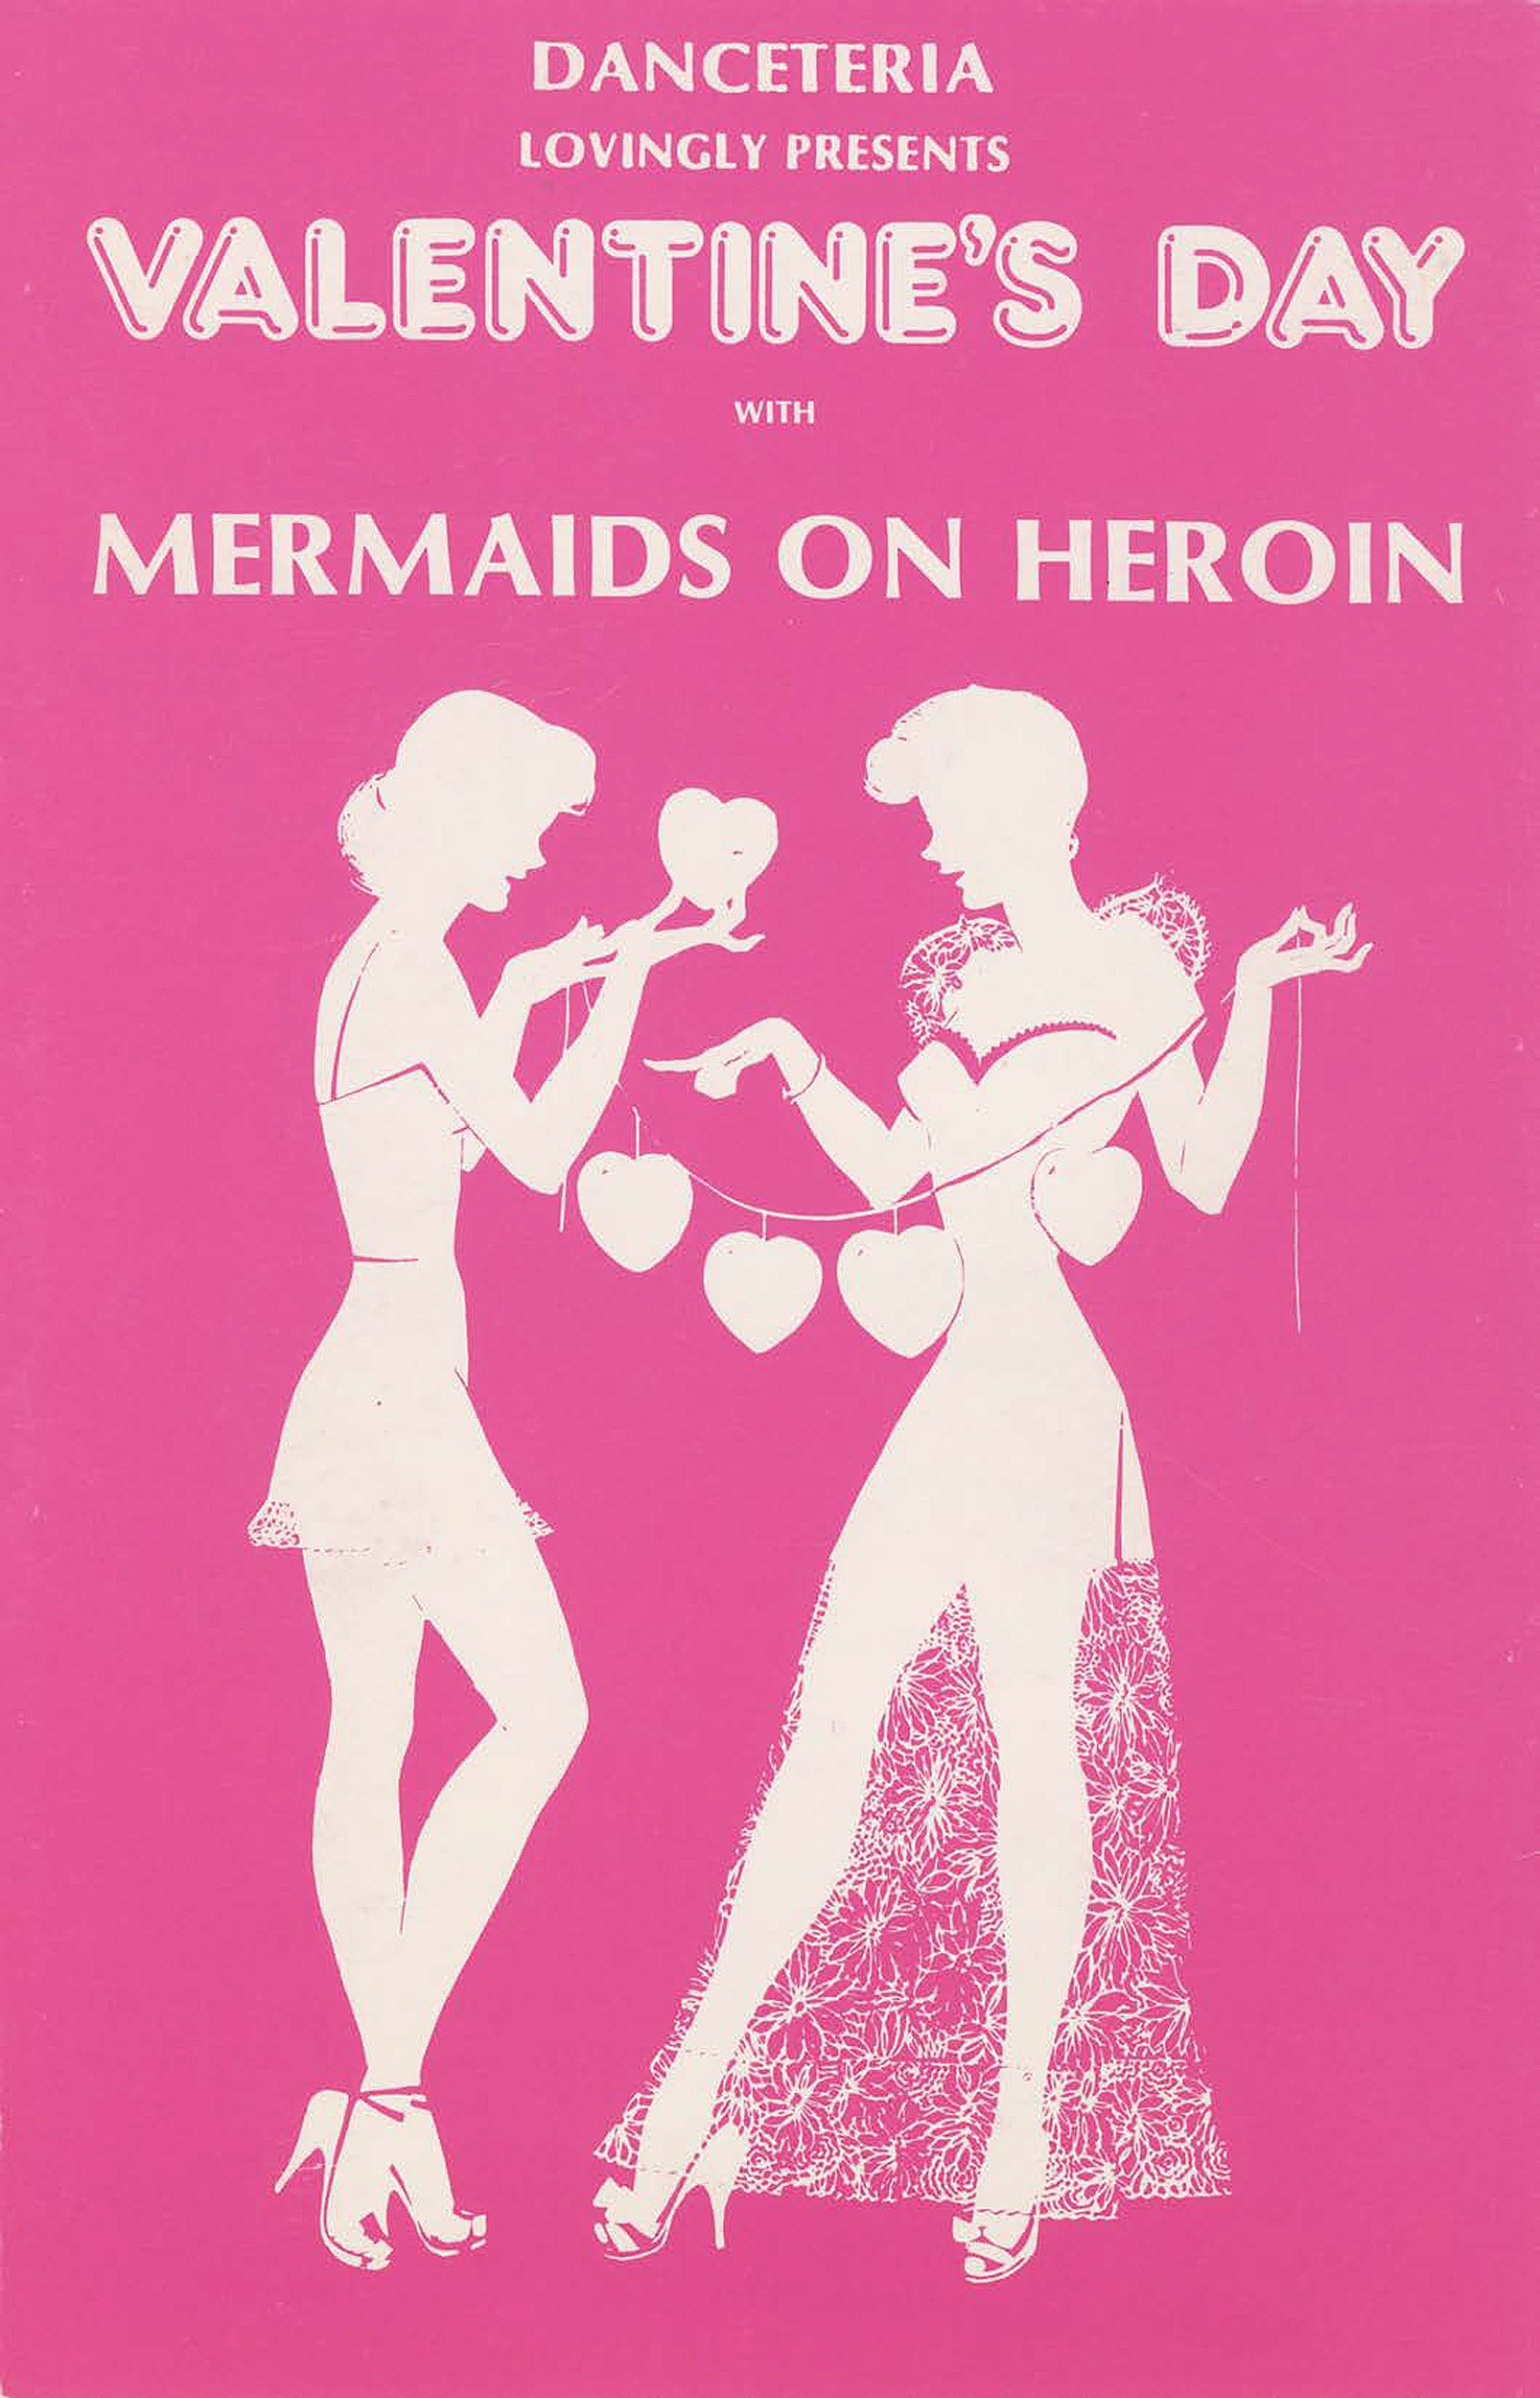 Pink flyer for Mermaids on Heroin and Valentine's Day show at Danceteria.